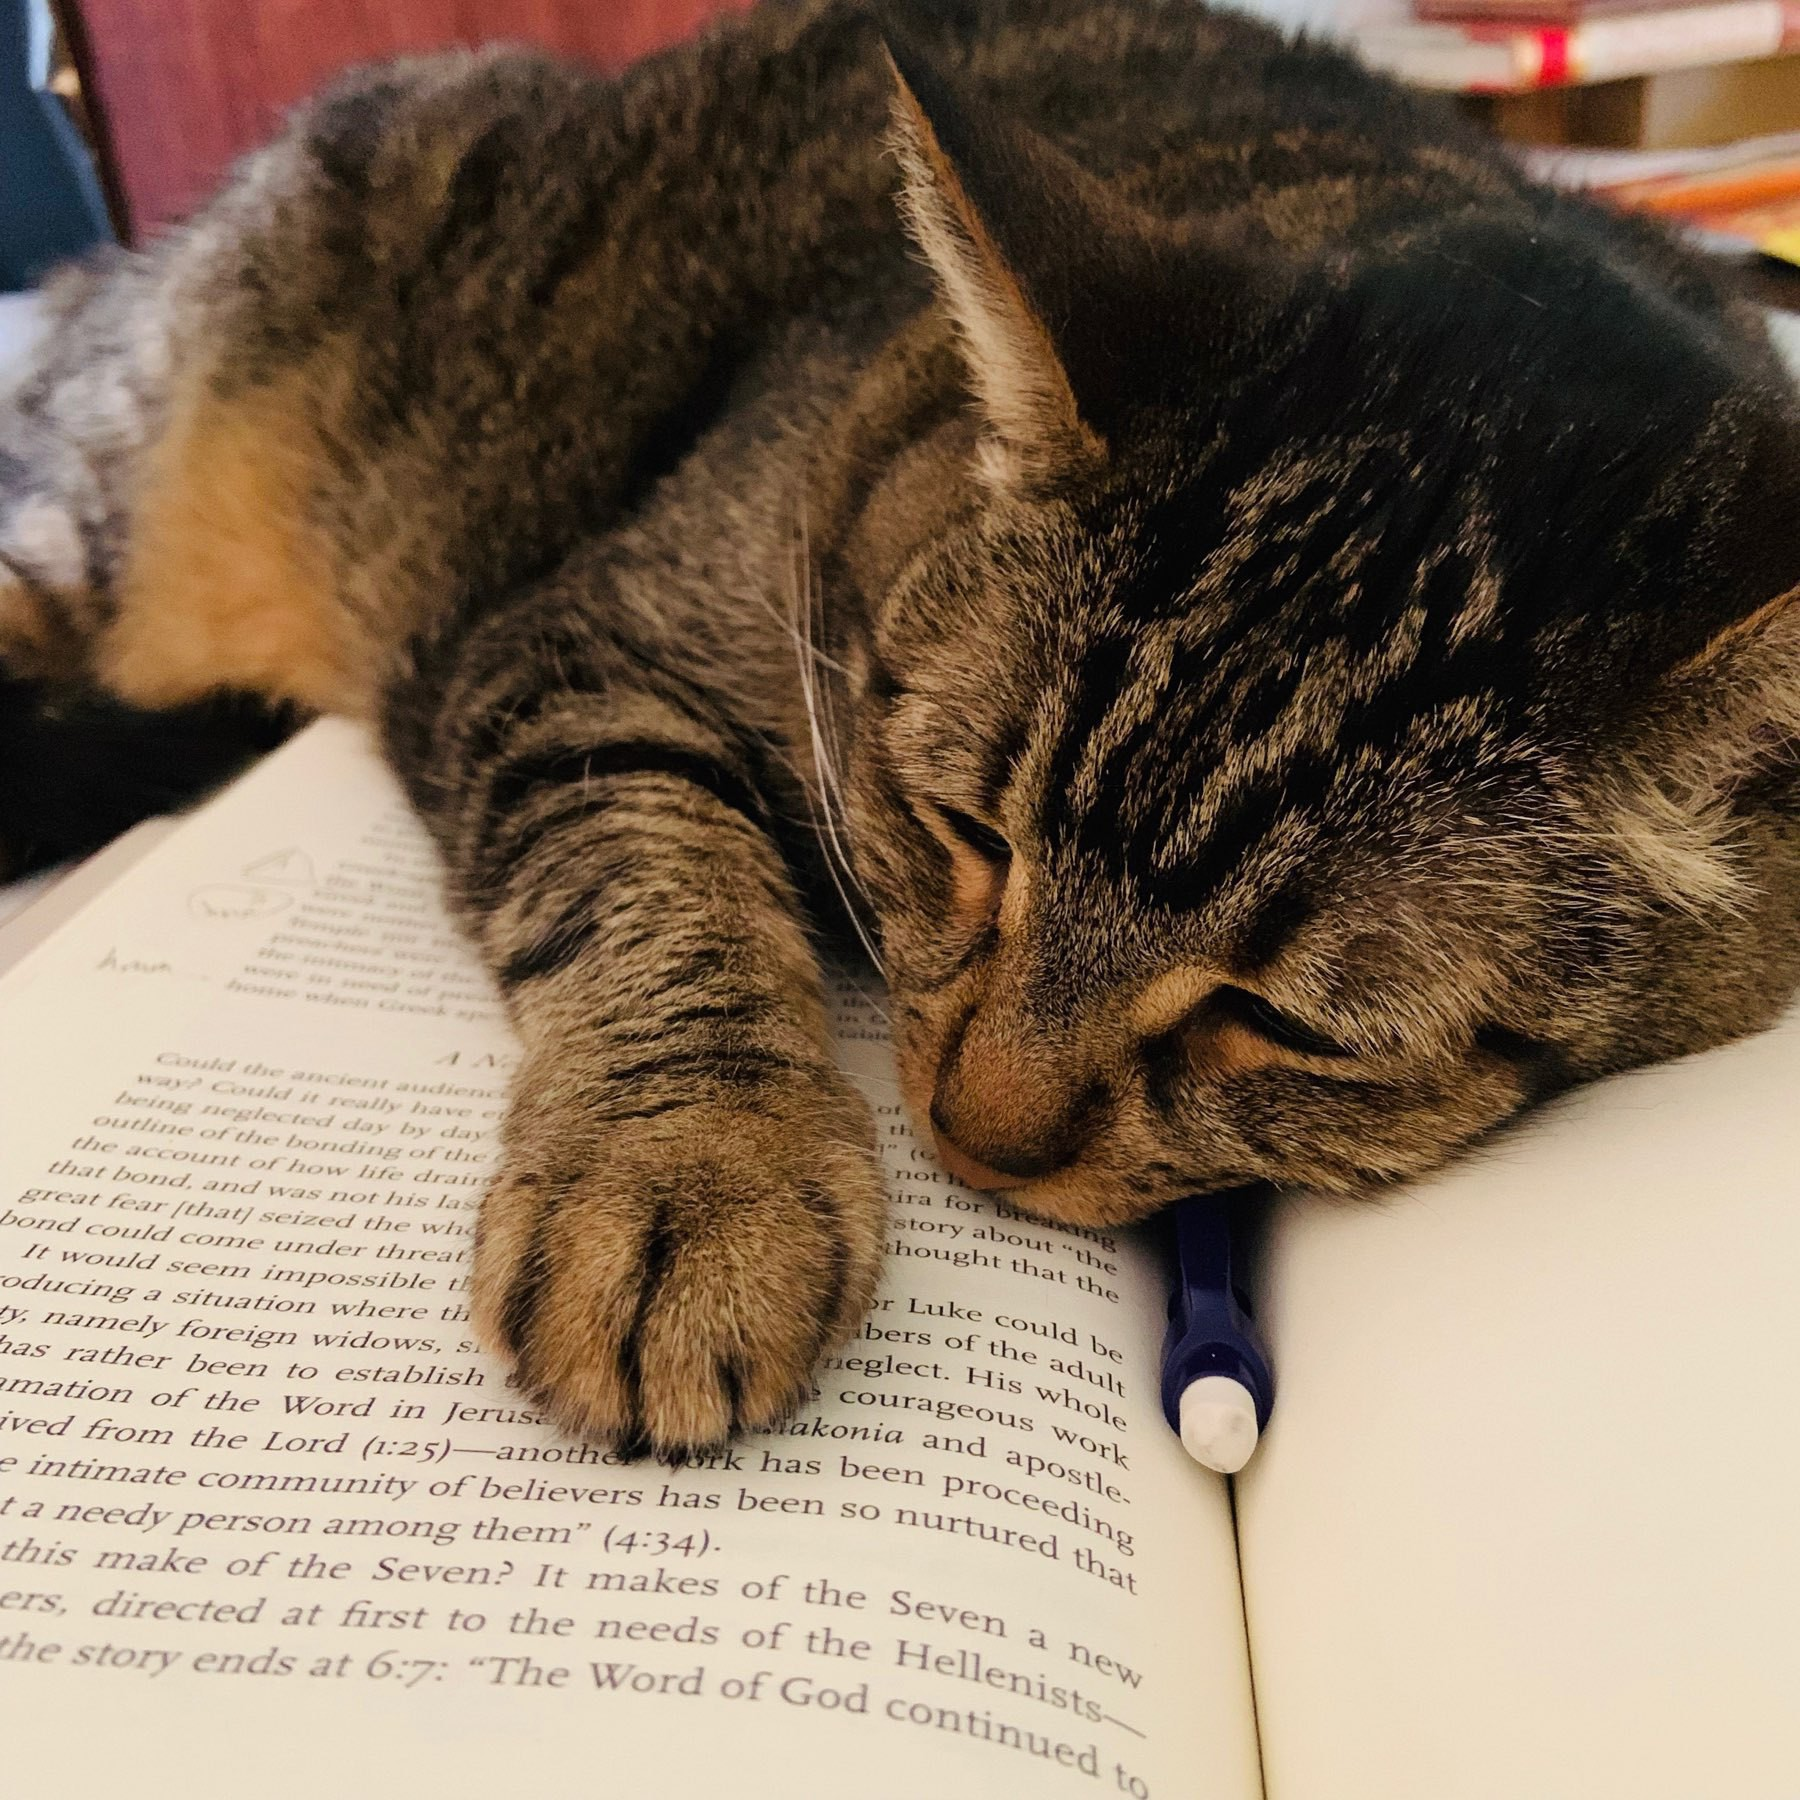 cat sleeping on a book